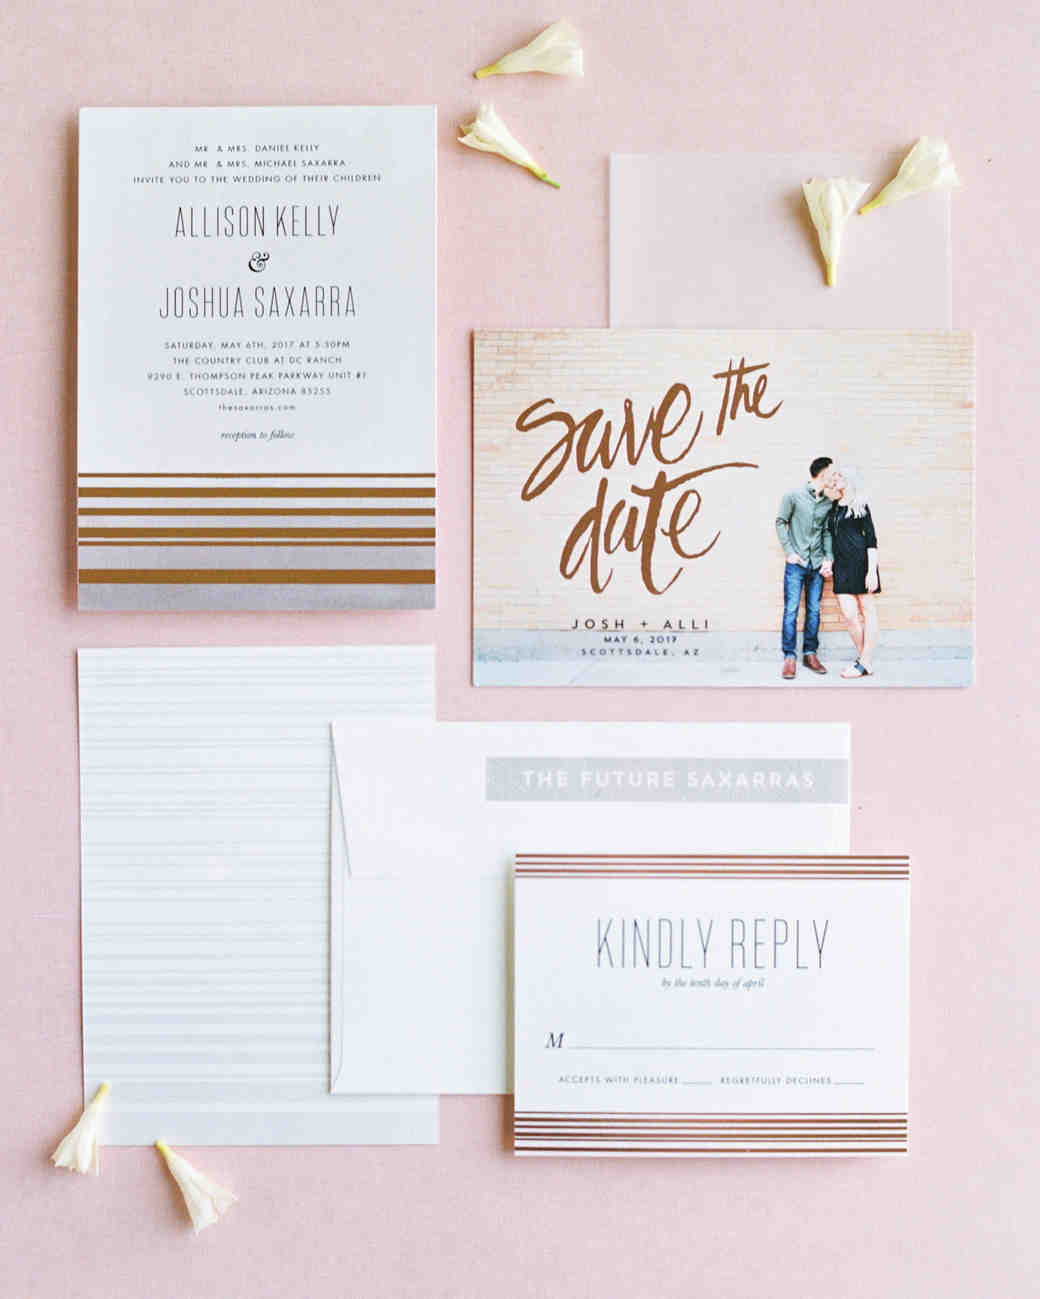 Creative Save The Date Wedding